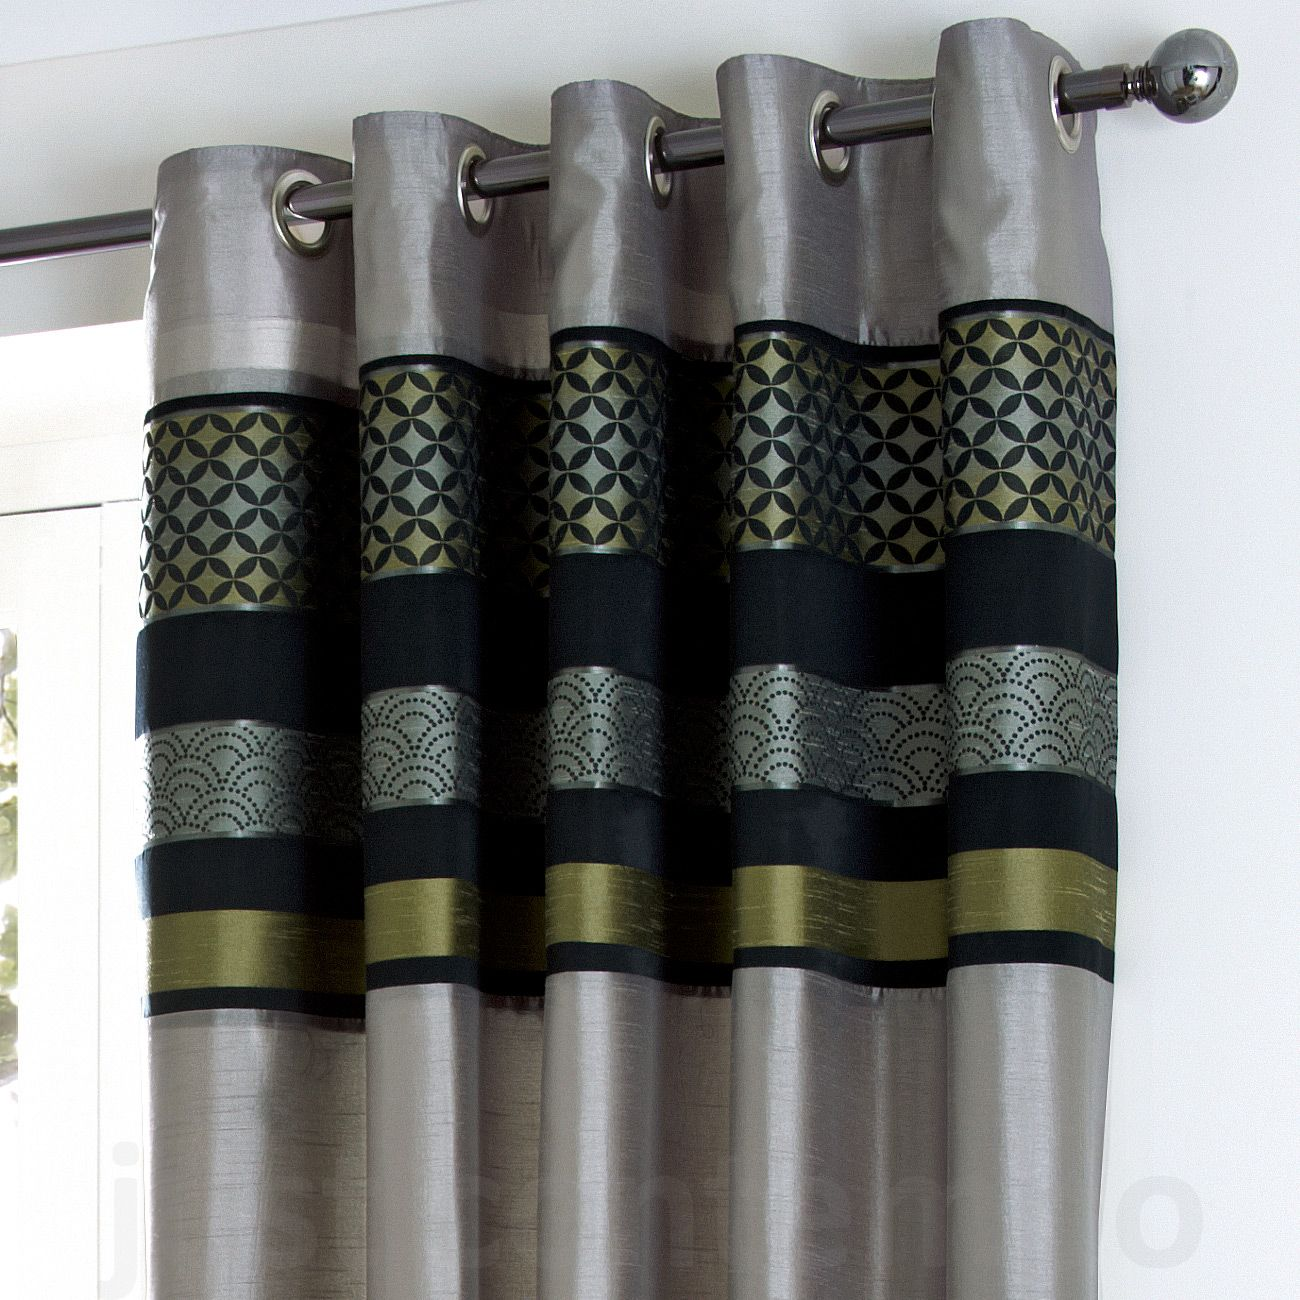 Silver Grey Curtains Style Jpg 1 300 1 300 Pixels Lime Green Curtains Curtains Green Curtains